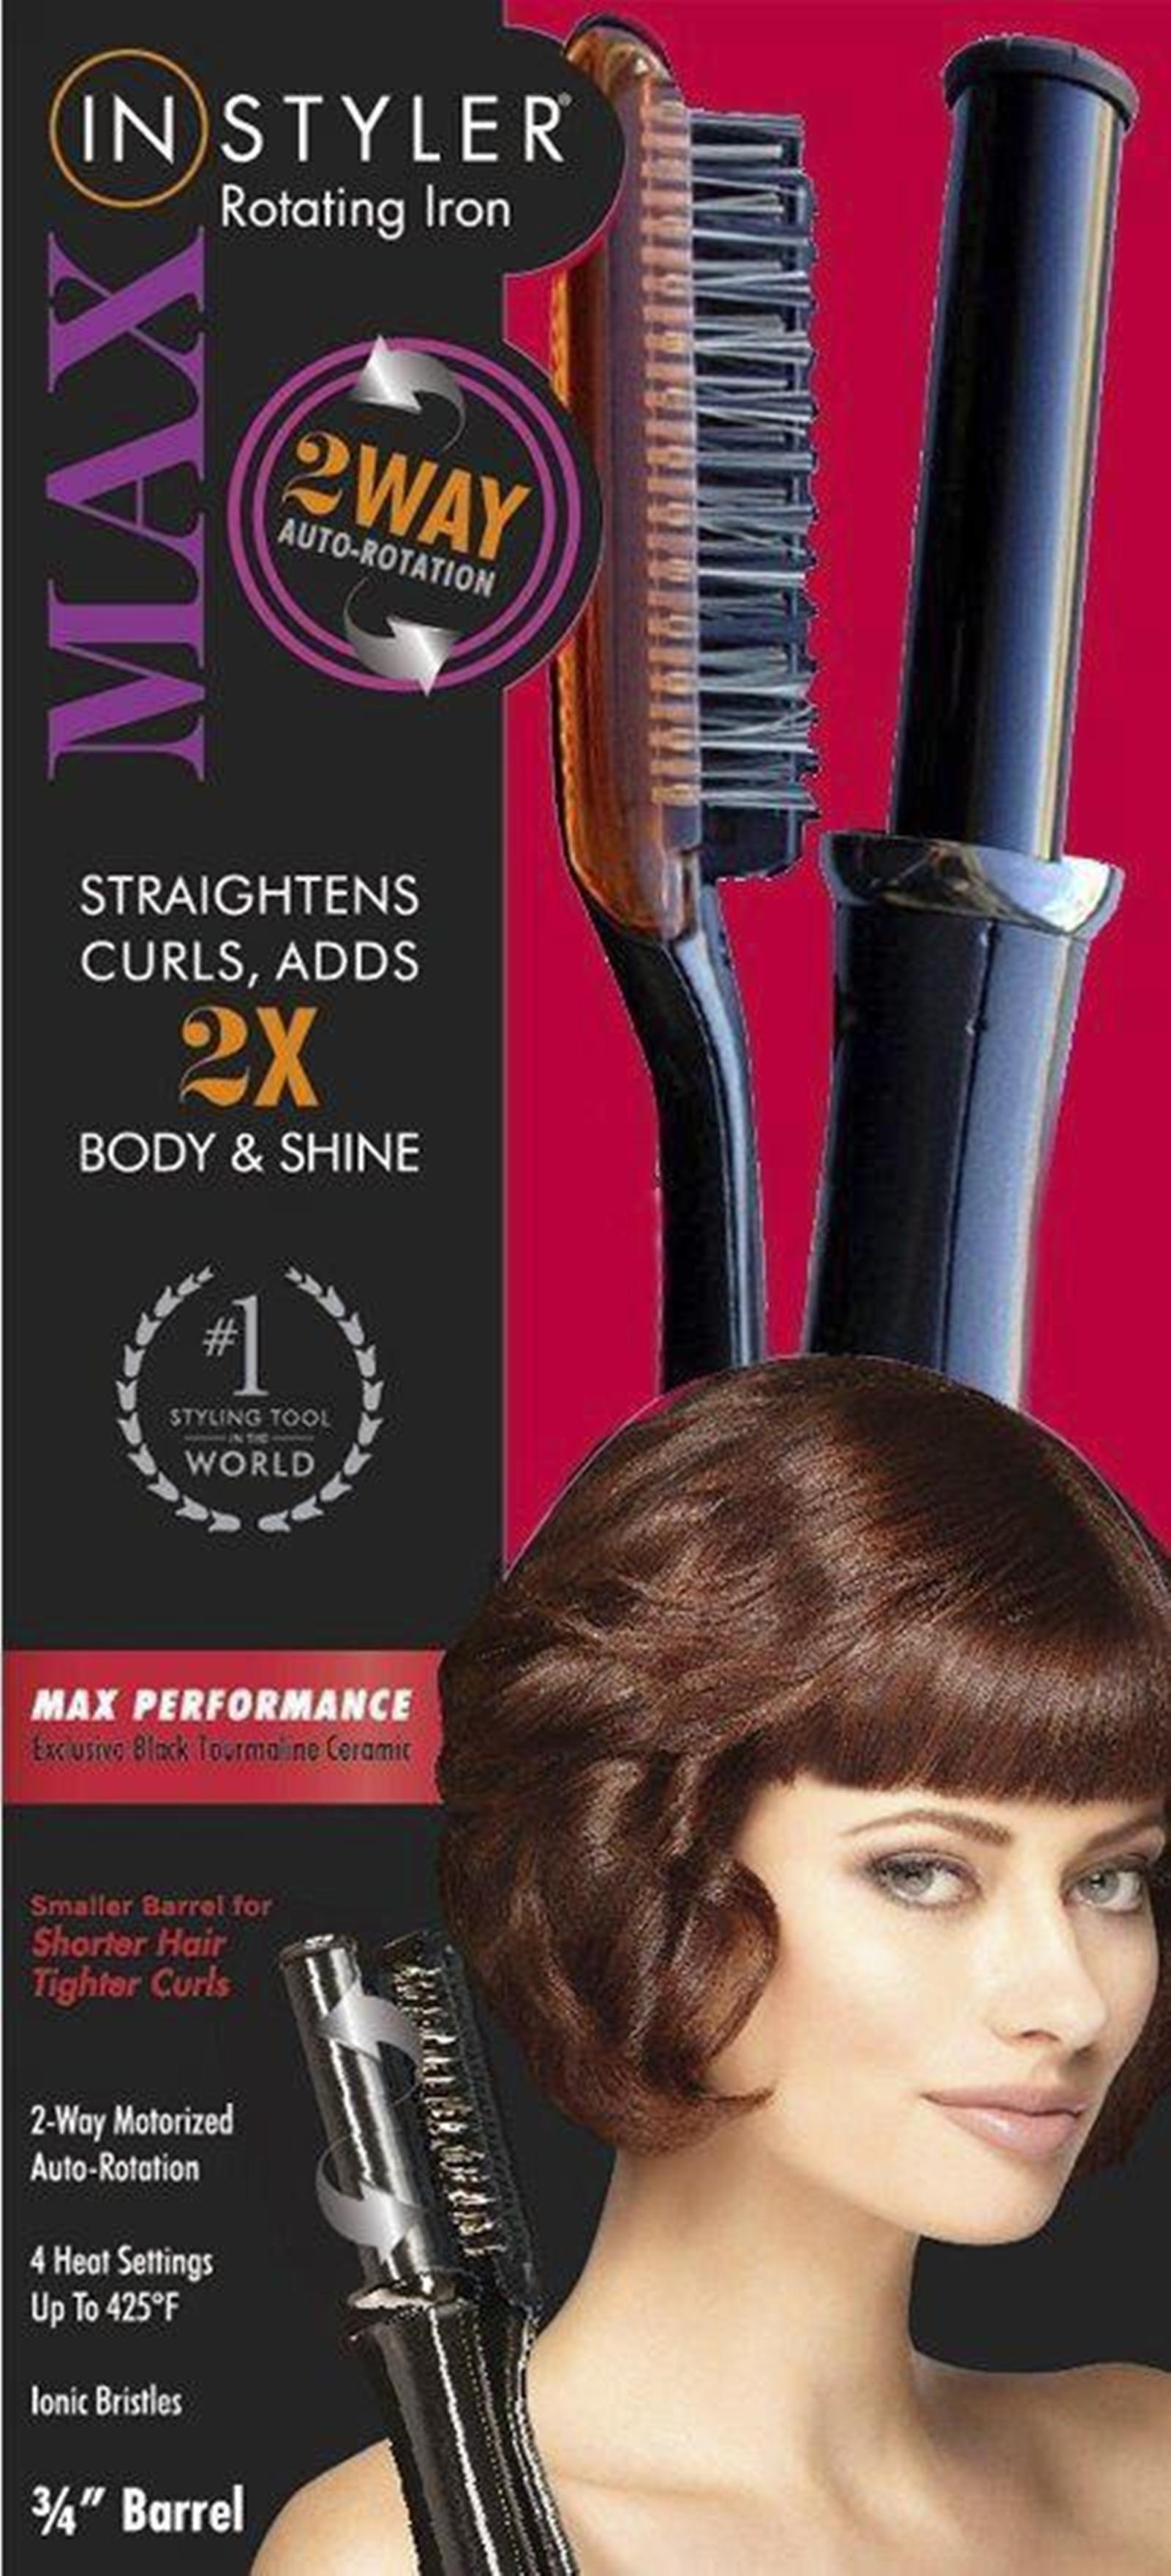 InStyler Max Hair Styler W 2 Way Auto Rotation Black 3